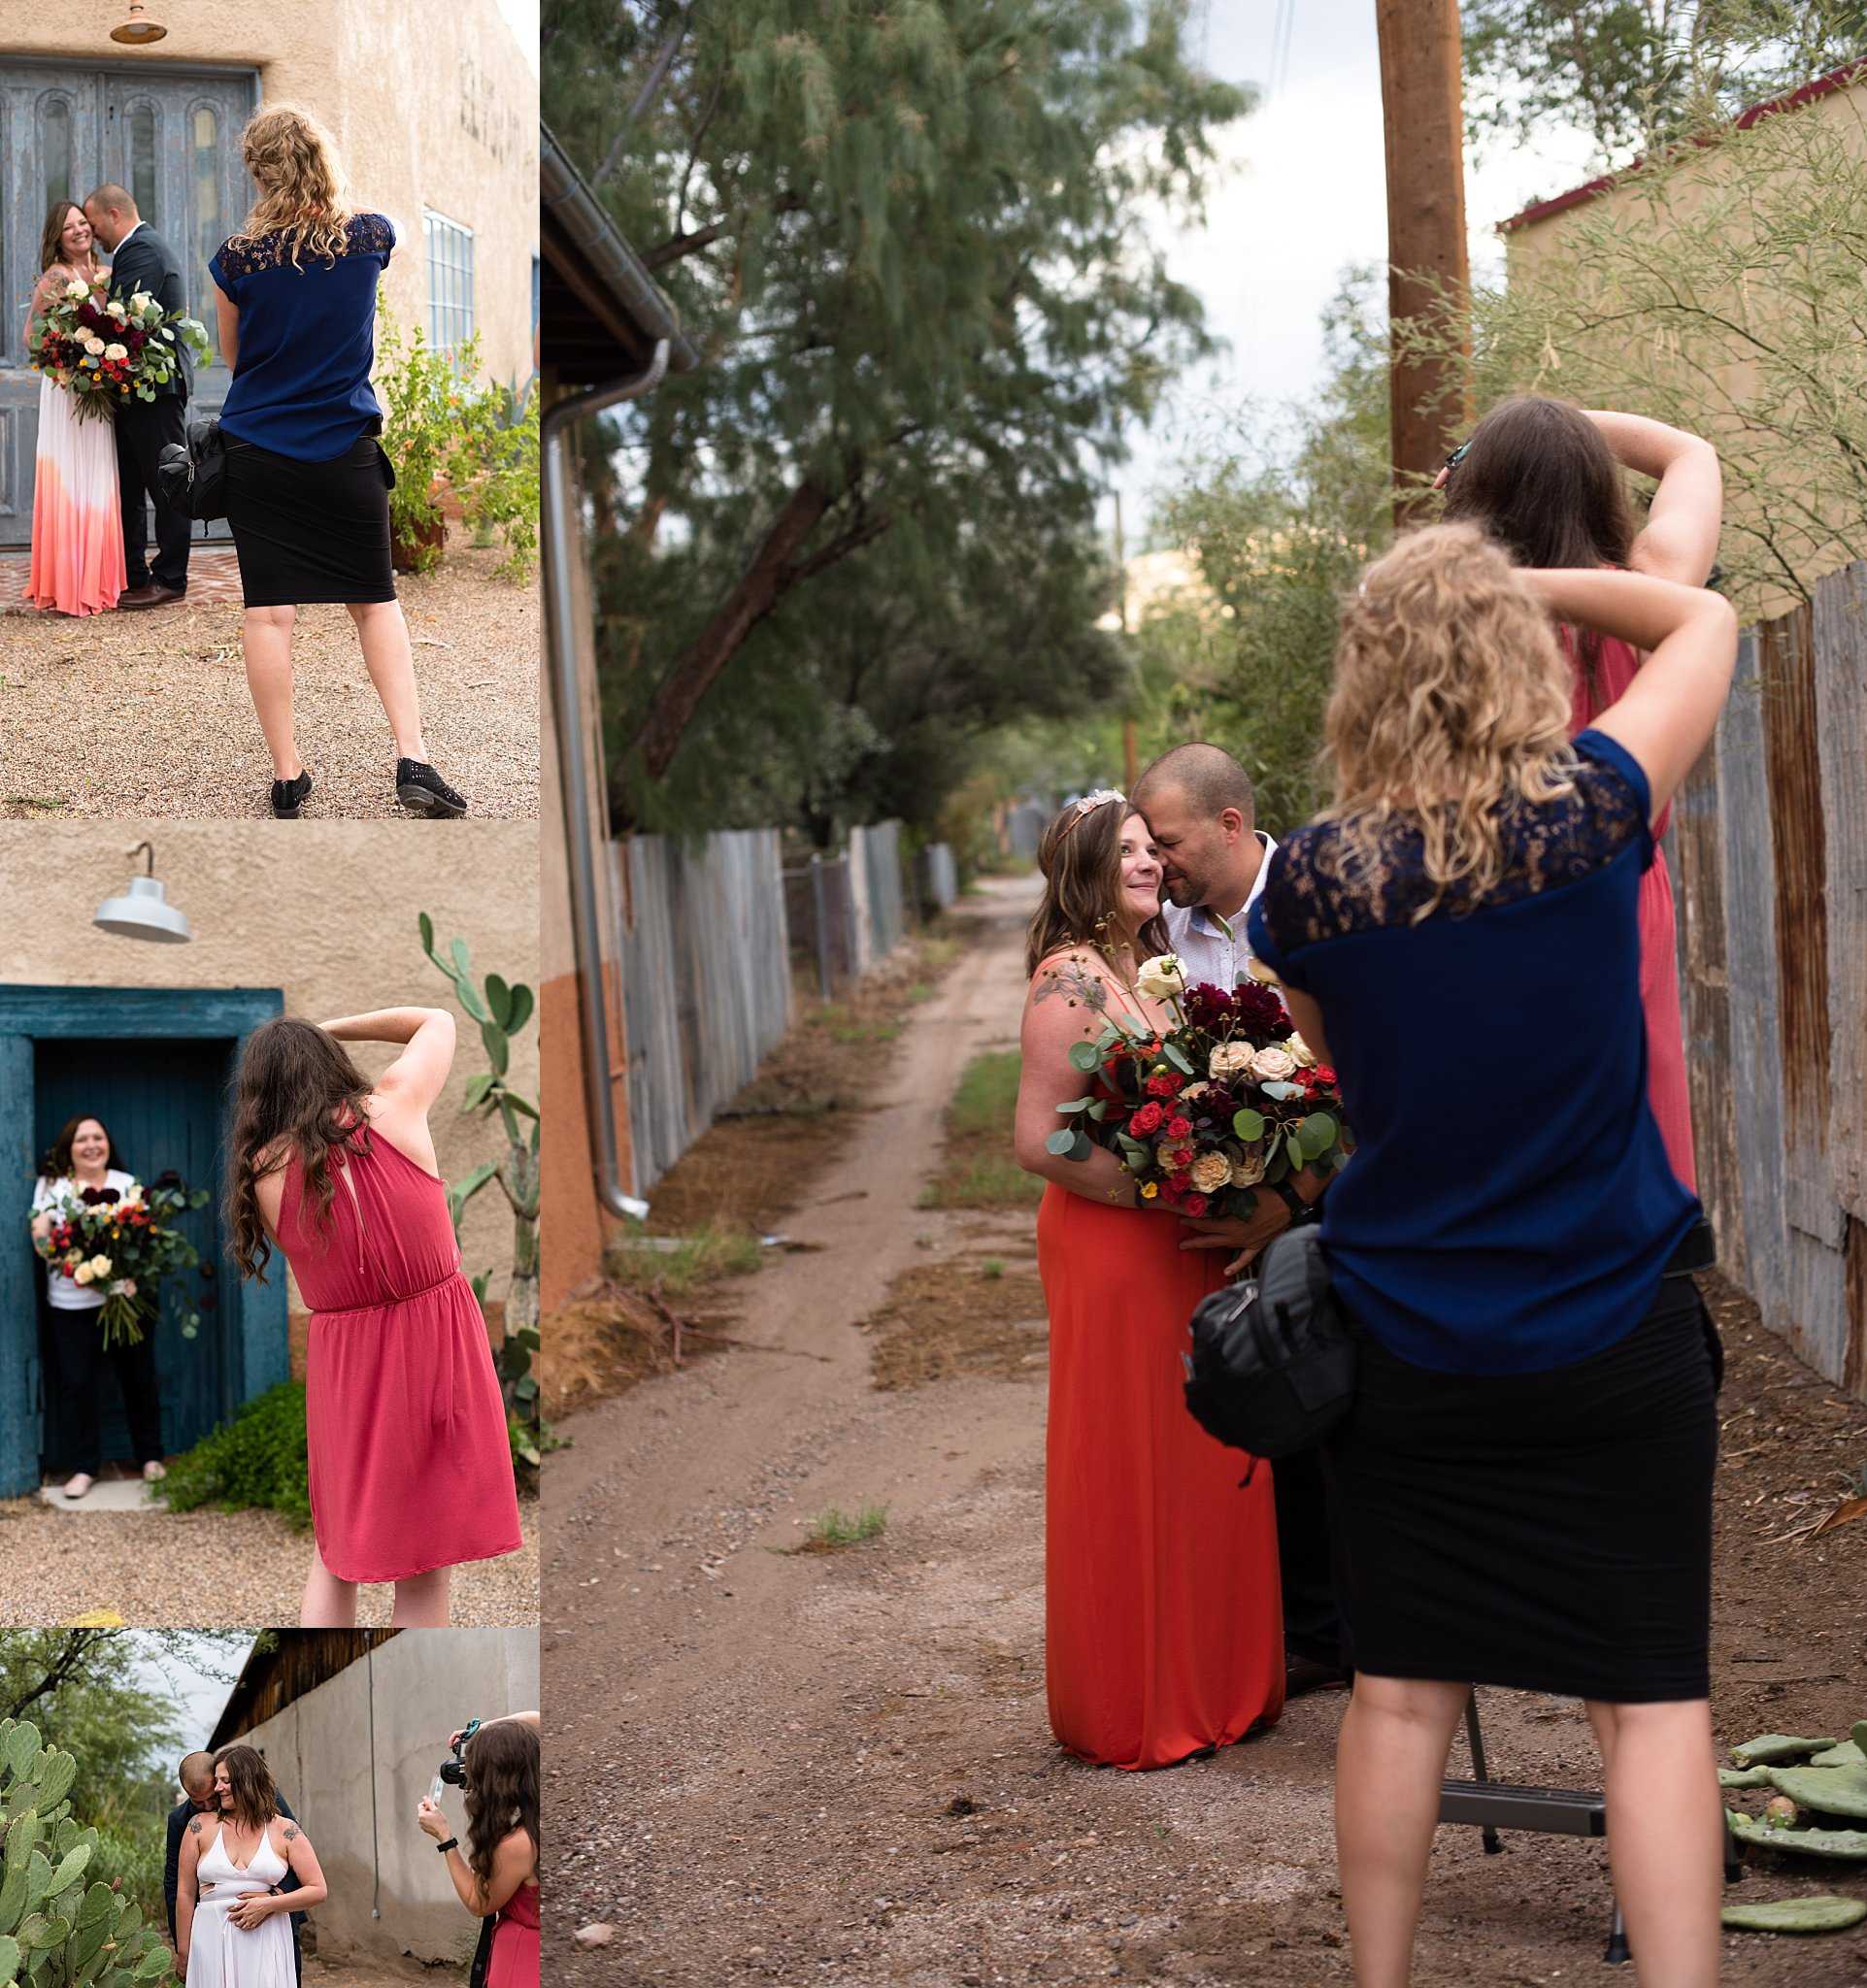 Here are just a few fun behind the scenes shots I took while Amanda and Misty were setting up some shots! I'm so grateful that I have an awesome creative community.